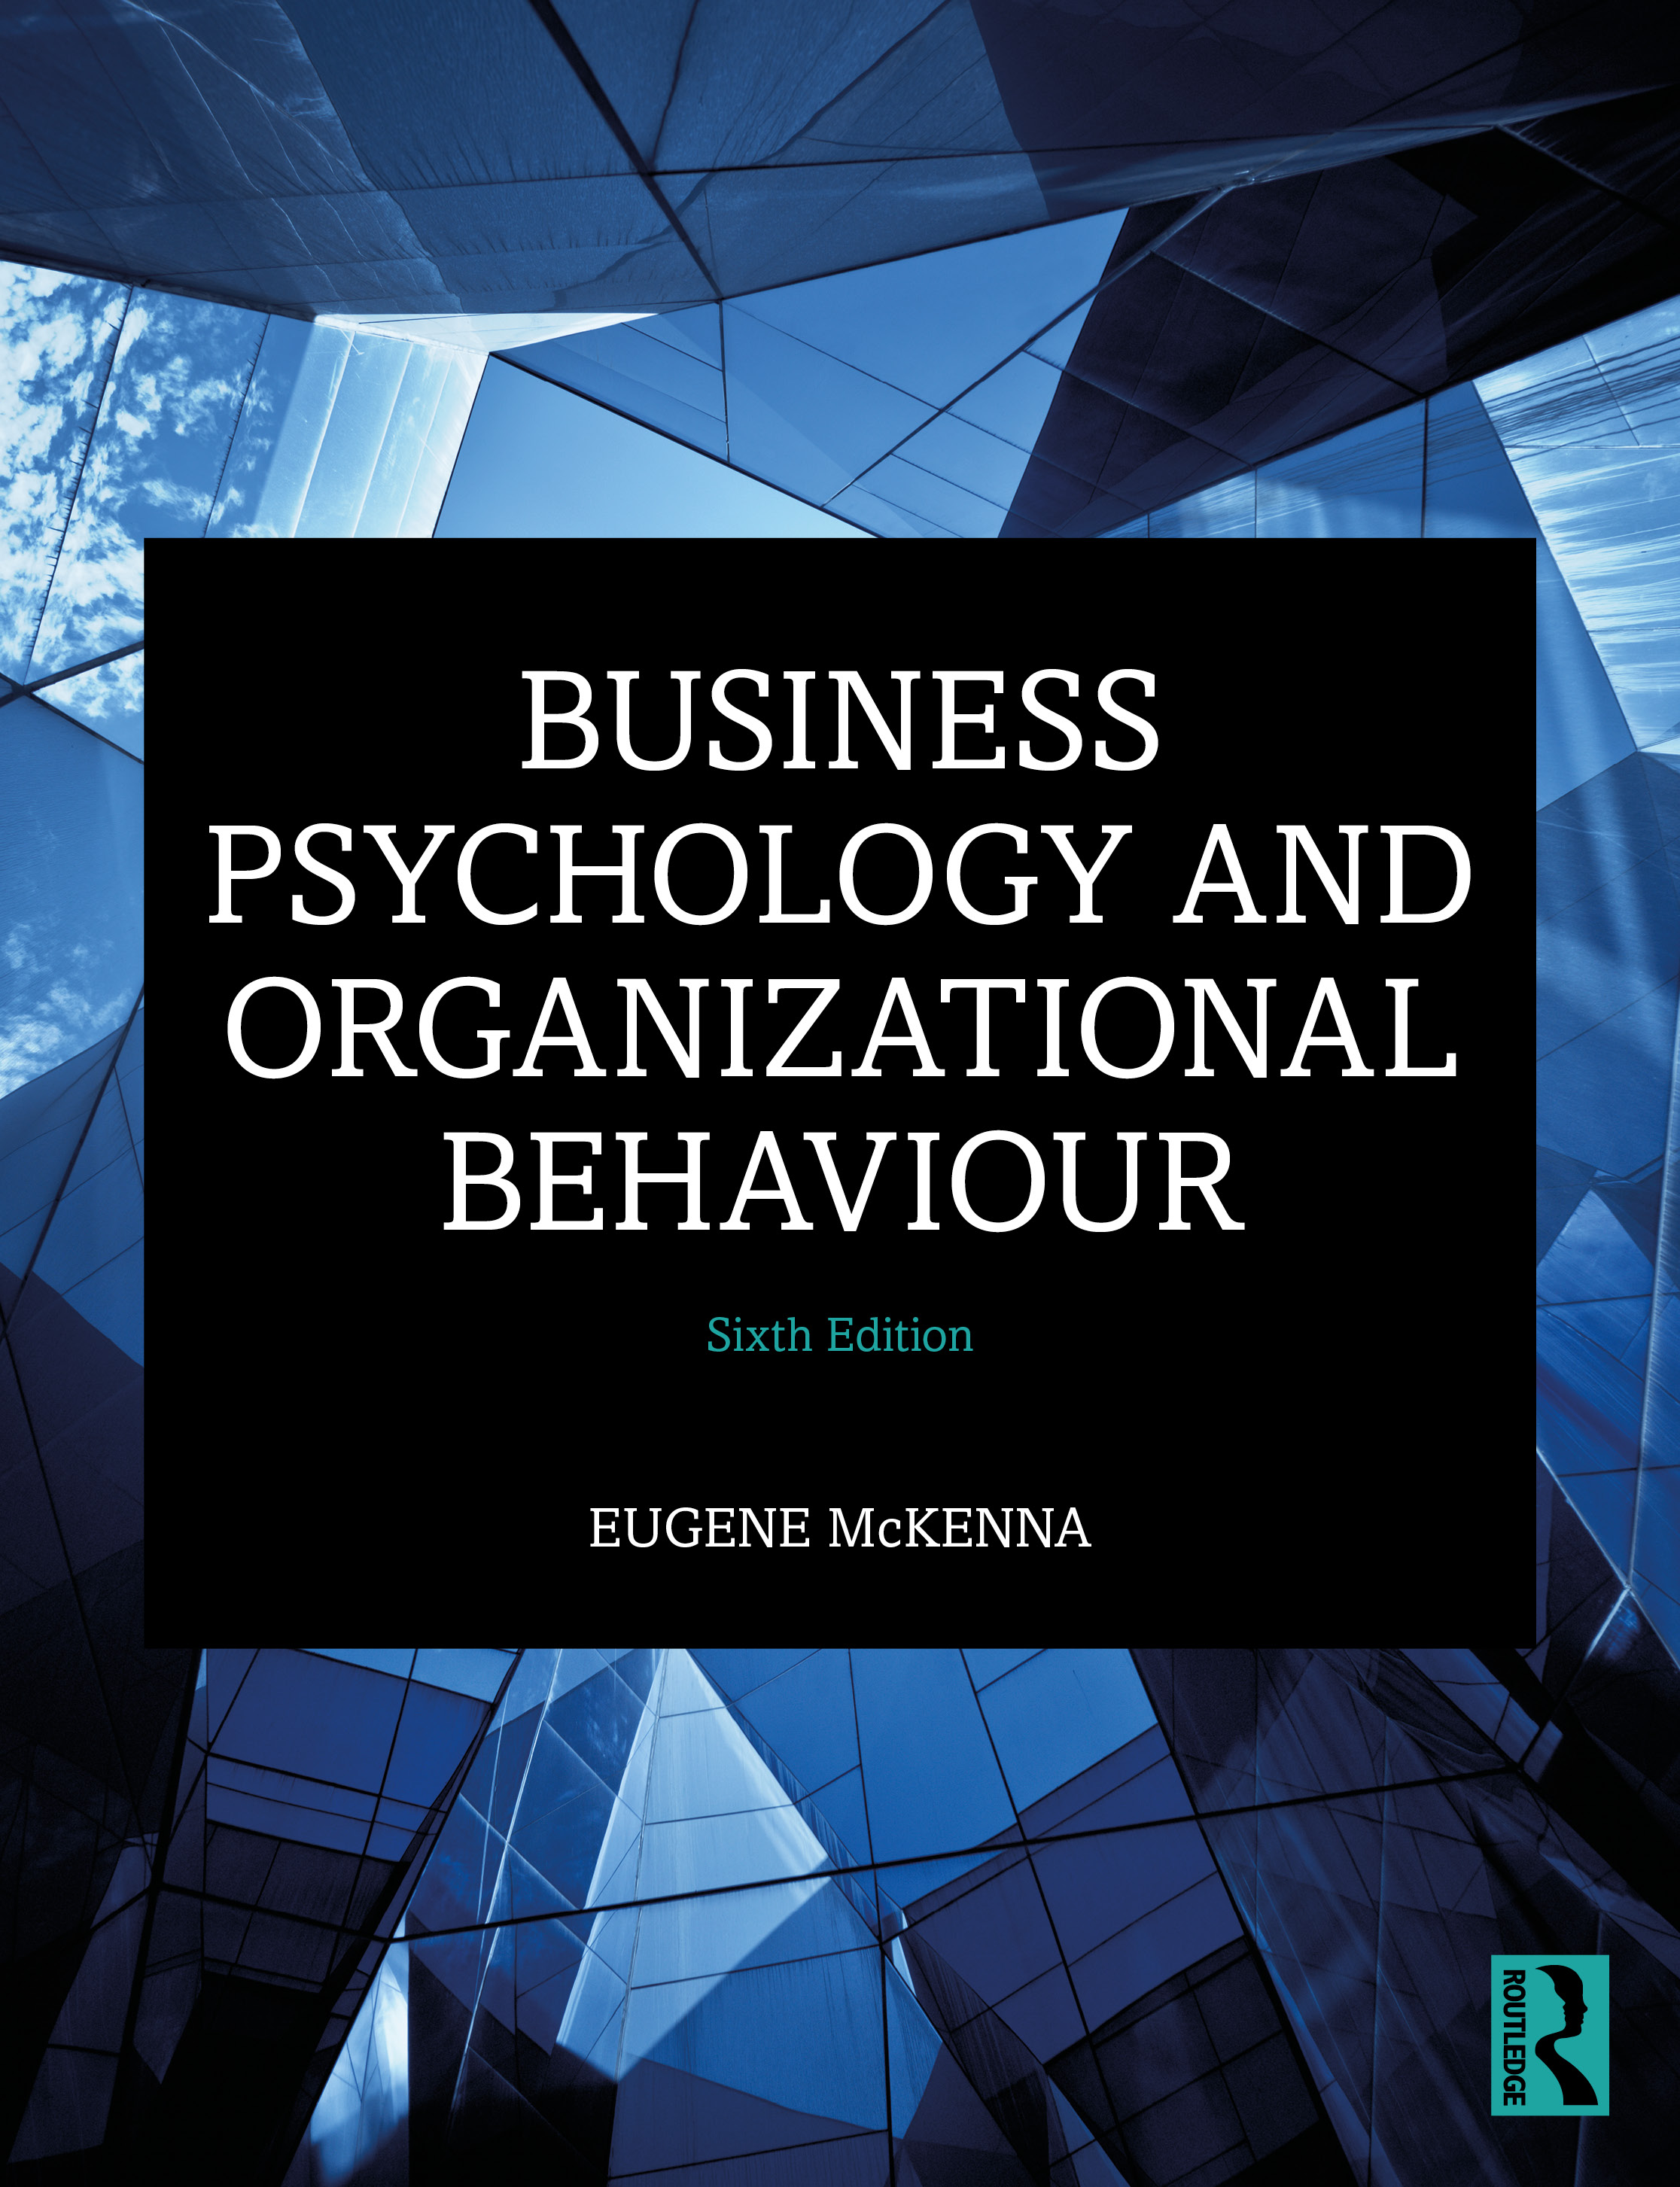 Business Psychology and Organizational Behaviour: 1st Edition (Paperback) book cover